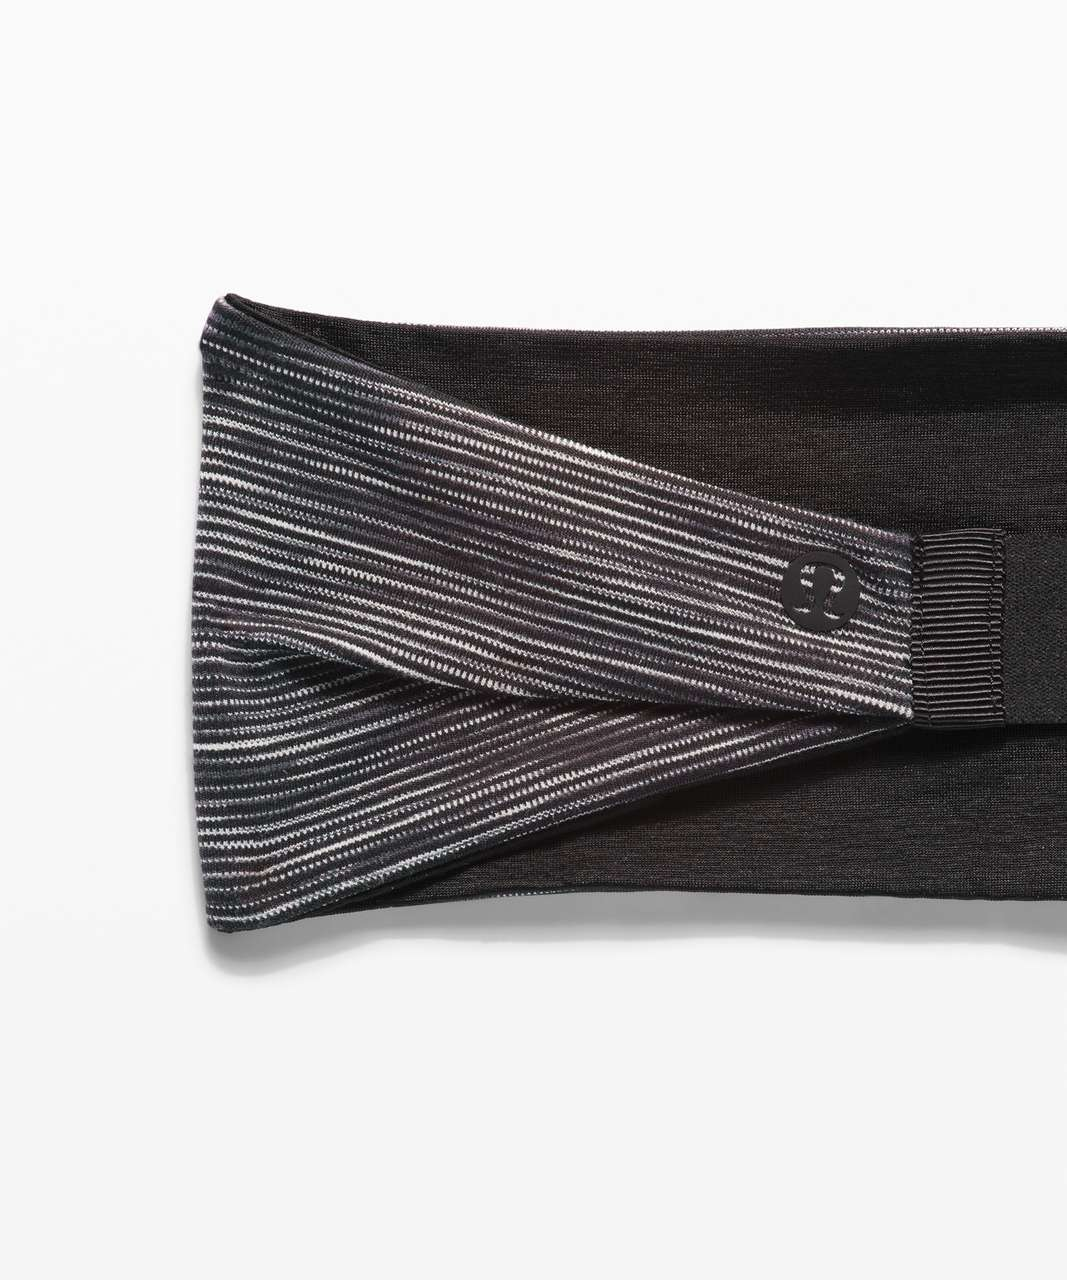 Lululemon Fringe Fighter Headband - Wee Are From Space Dark Carbon Ice Grey / Black